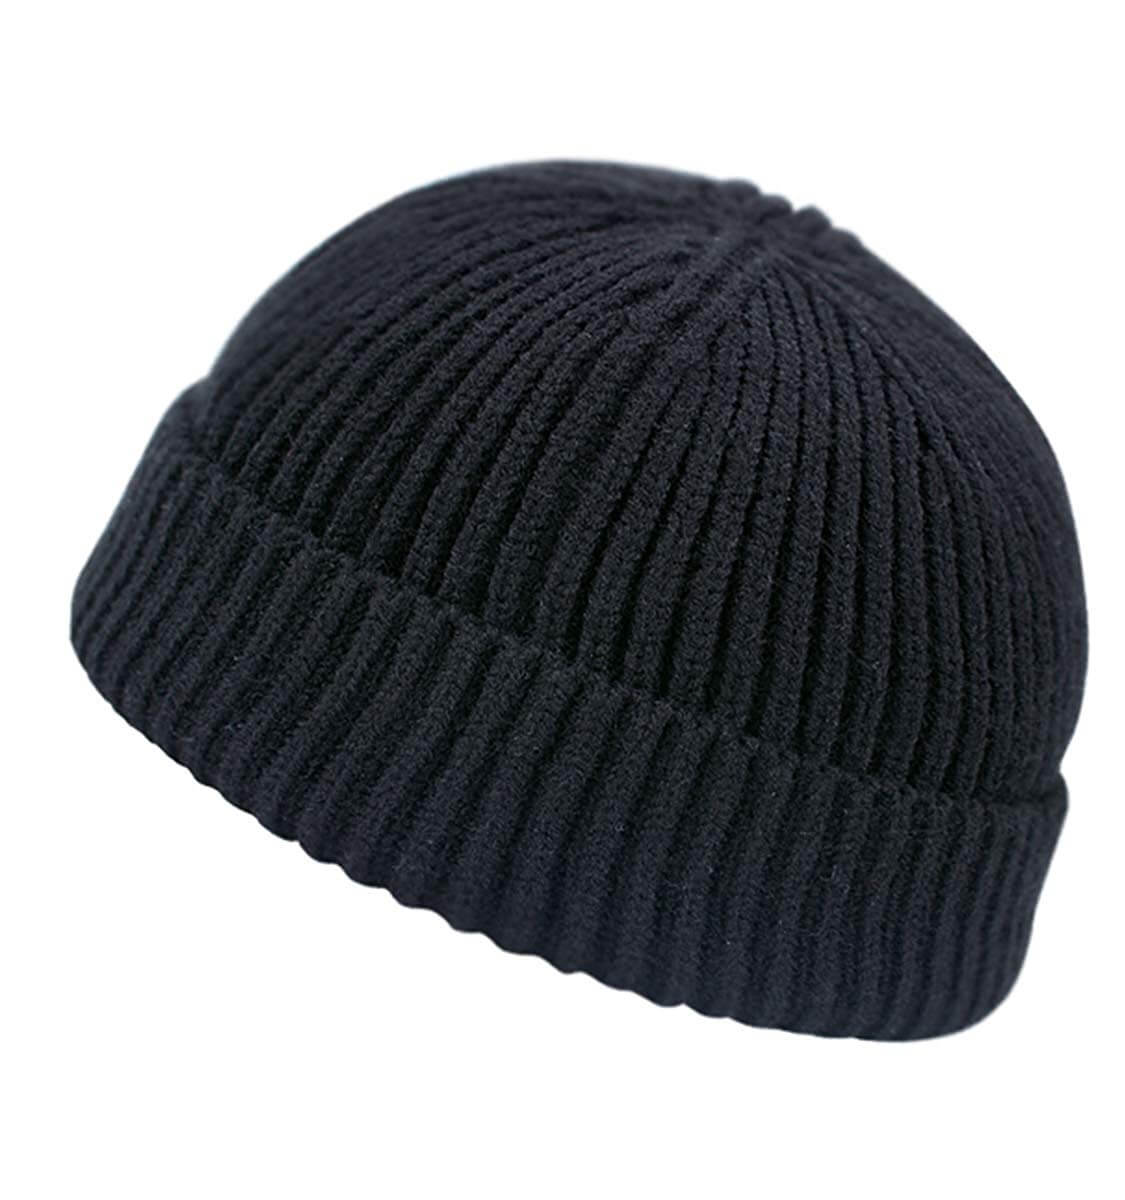 Rollup Edge Knitted Short Beanie